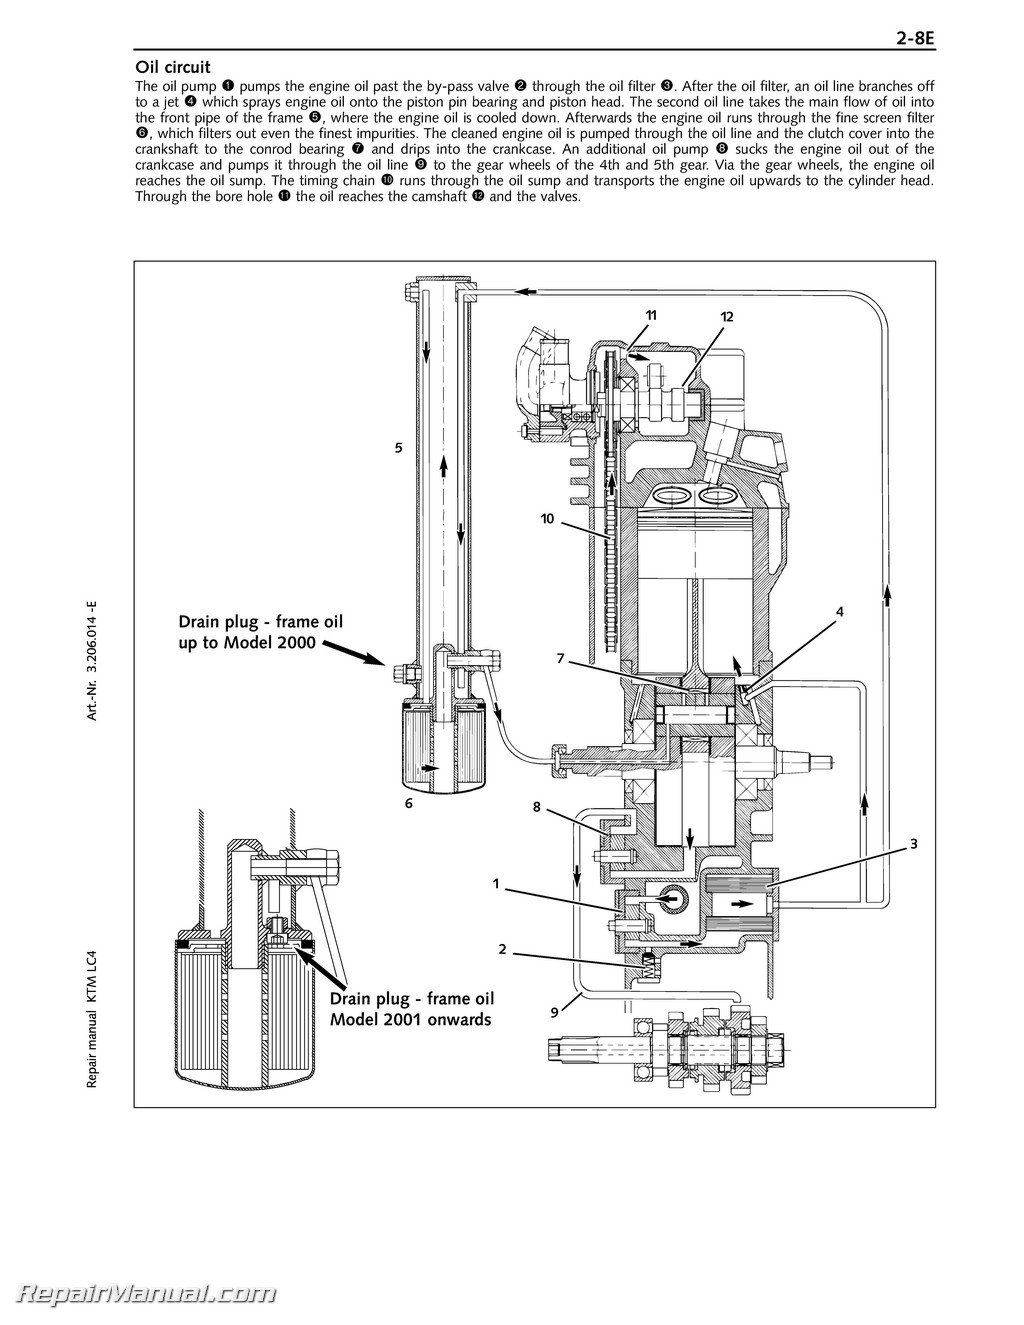 2002 KTM Engine Diagram Trusted Wiring. 1998 2005 KTM 400 660 Lc4 Paper Engine Repair Manual Drawing 2002 Diagram. KTM. KTM 50 Dirt Bike Diagram At Scoala.co